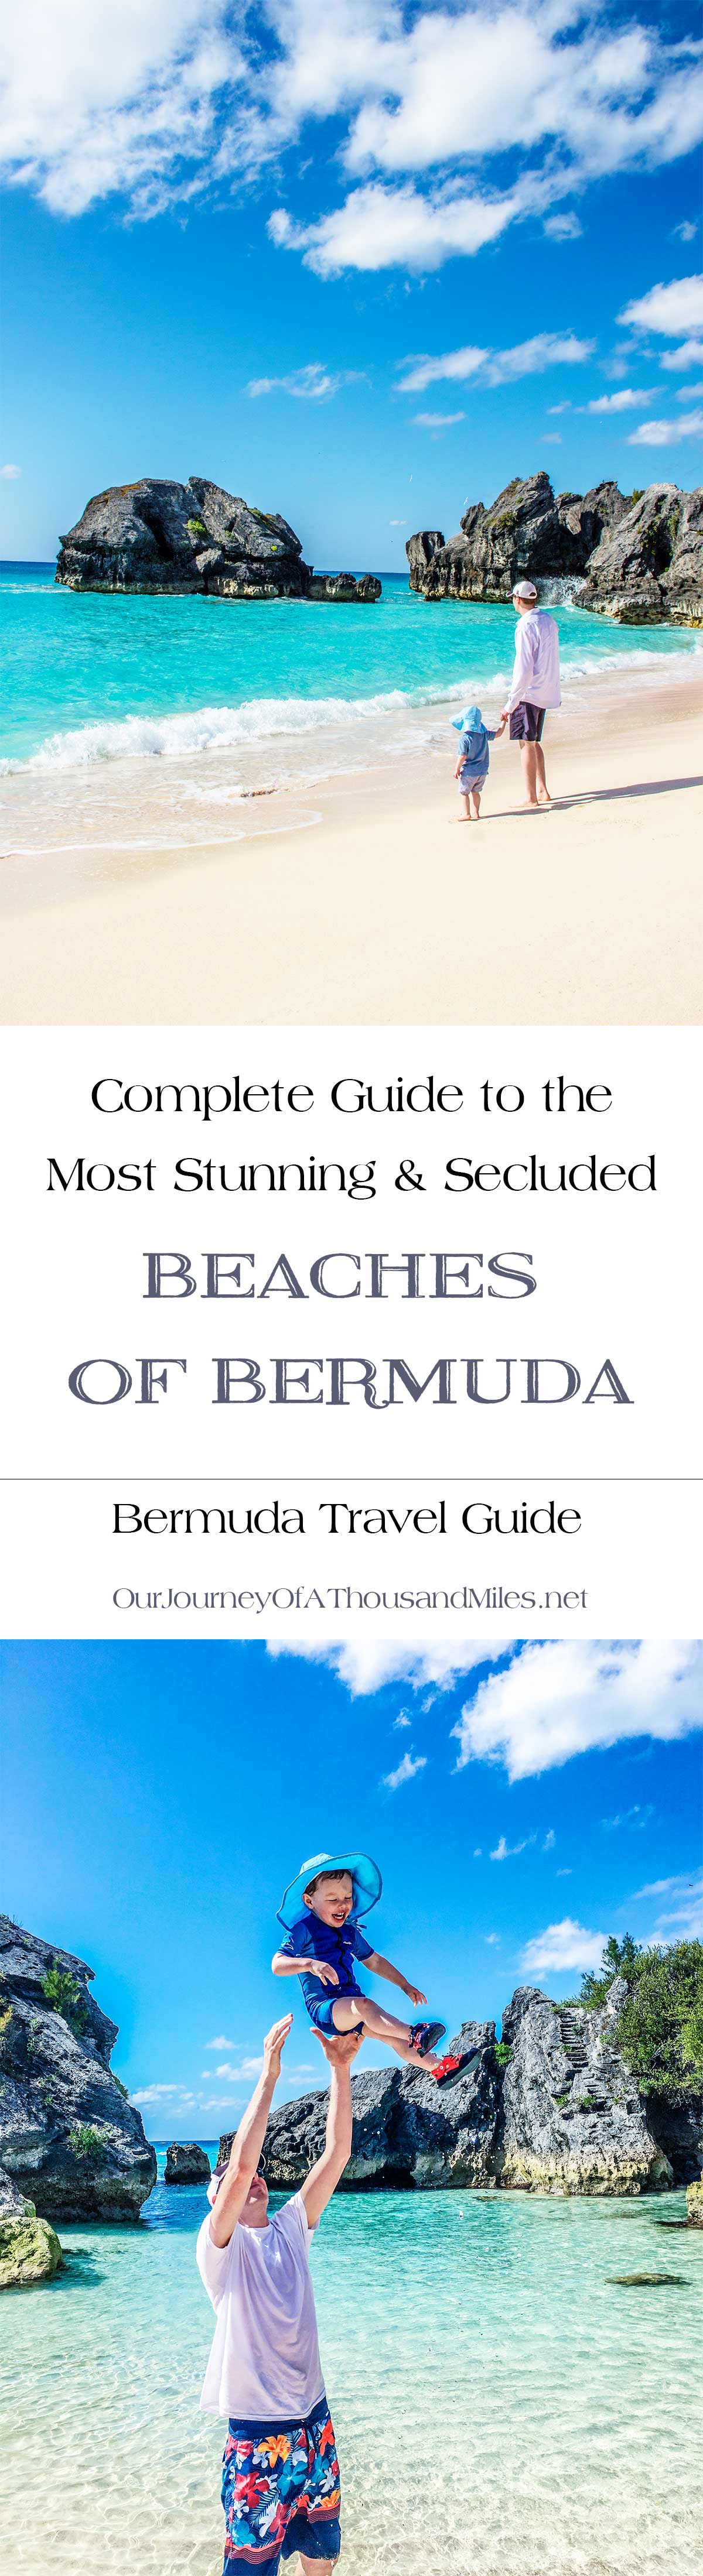 Complete-Guide-to-the-Most-Stunning-and-Secluded-Beaches-of-Bermuda